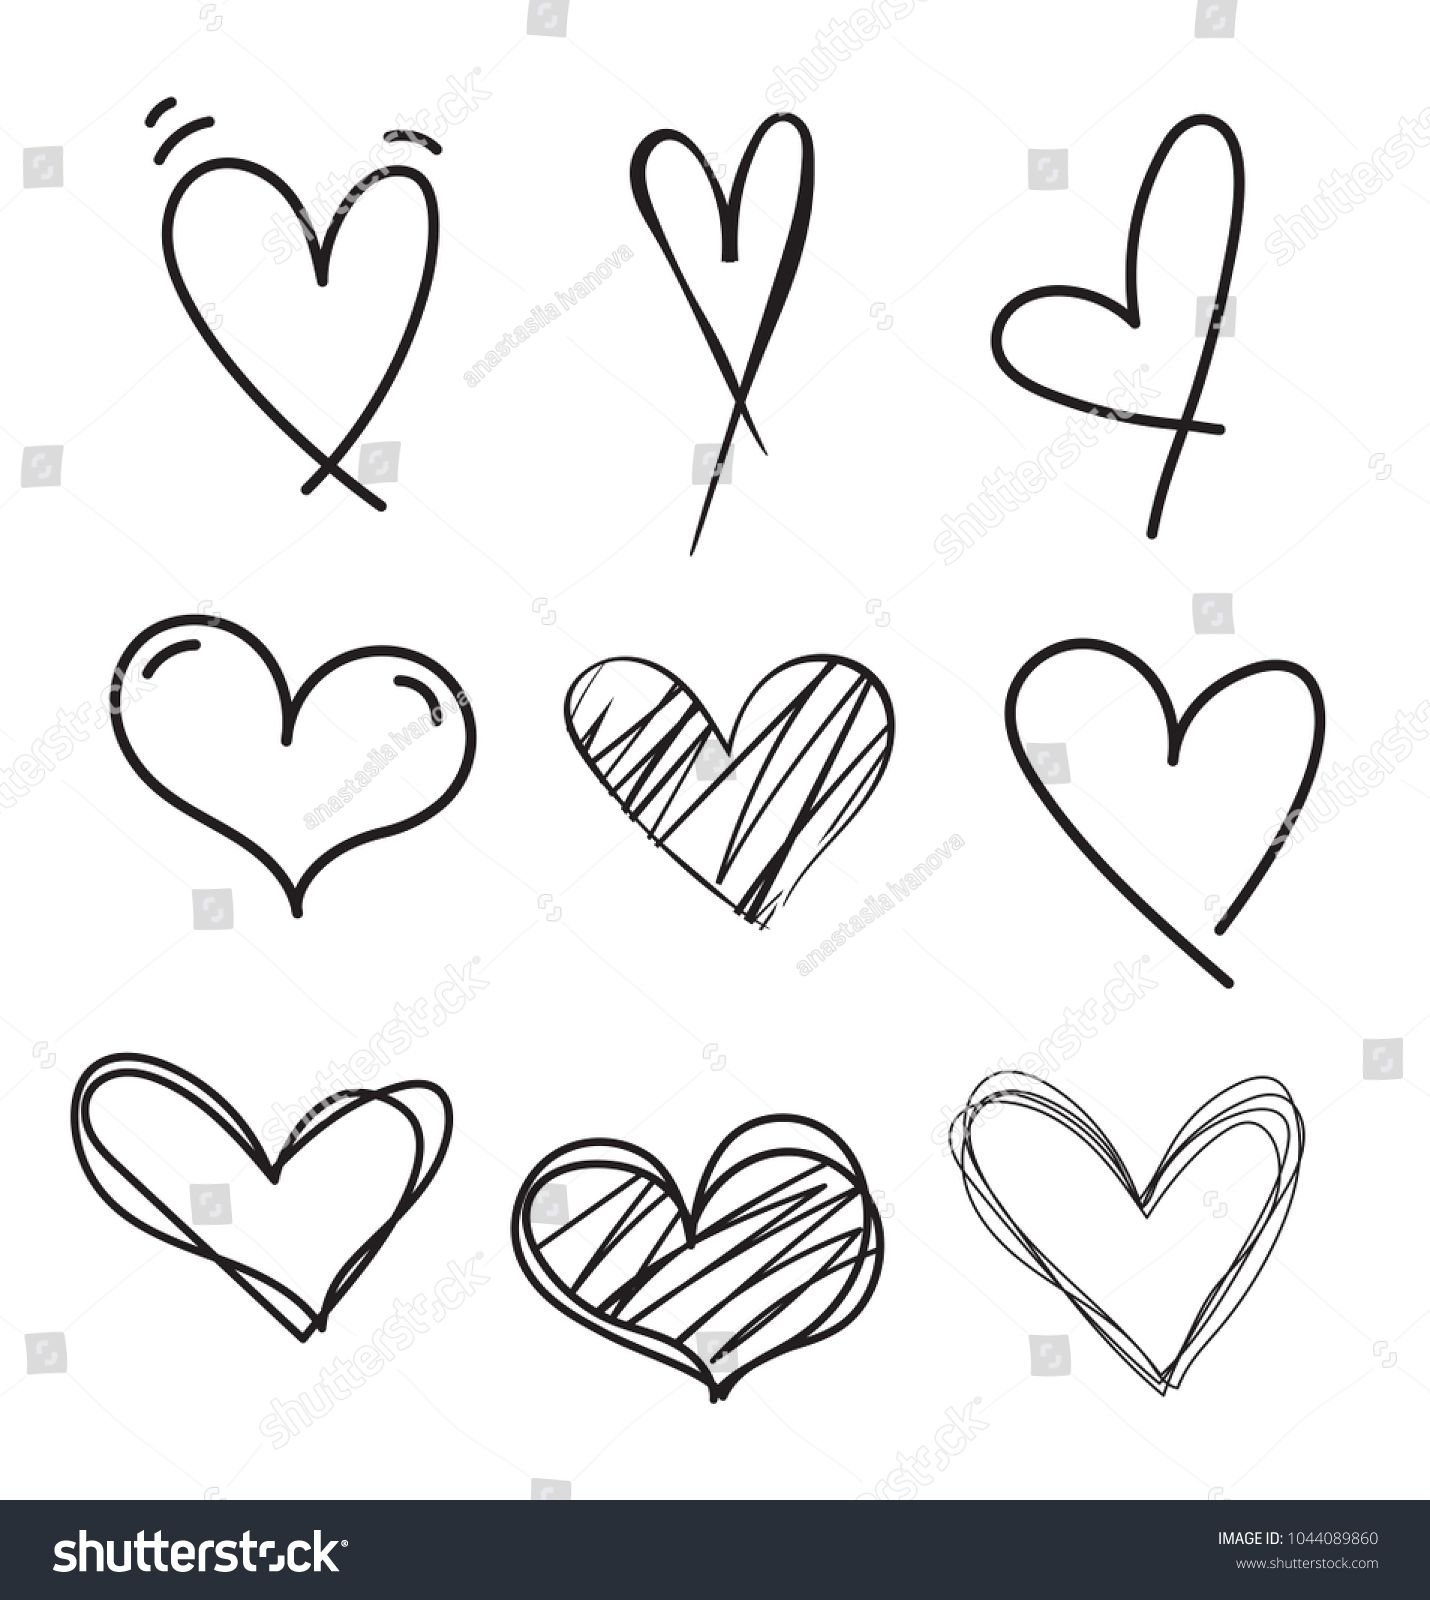 Set of outline hand drawn heart icon.Hand drawn doodle